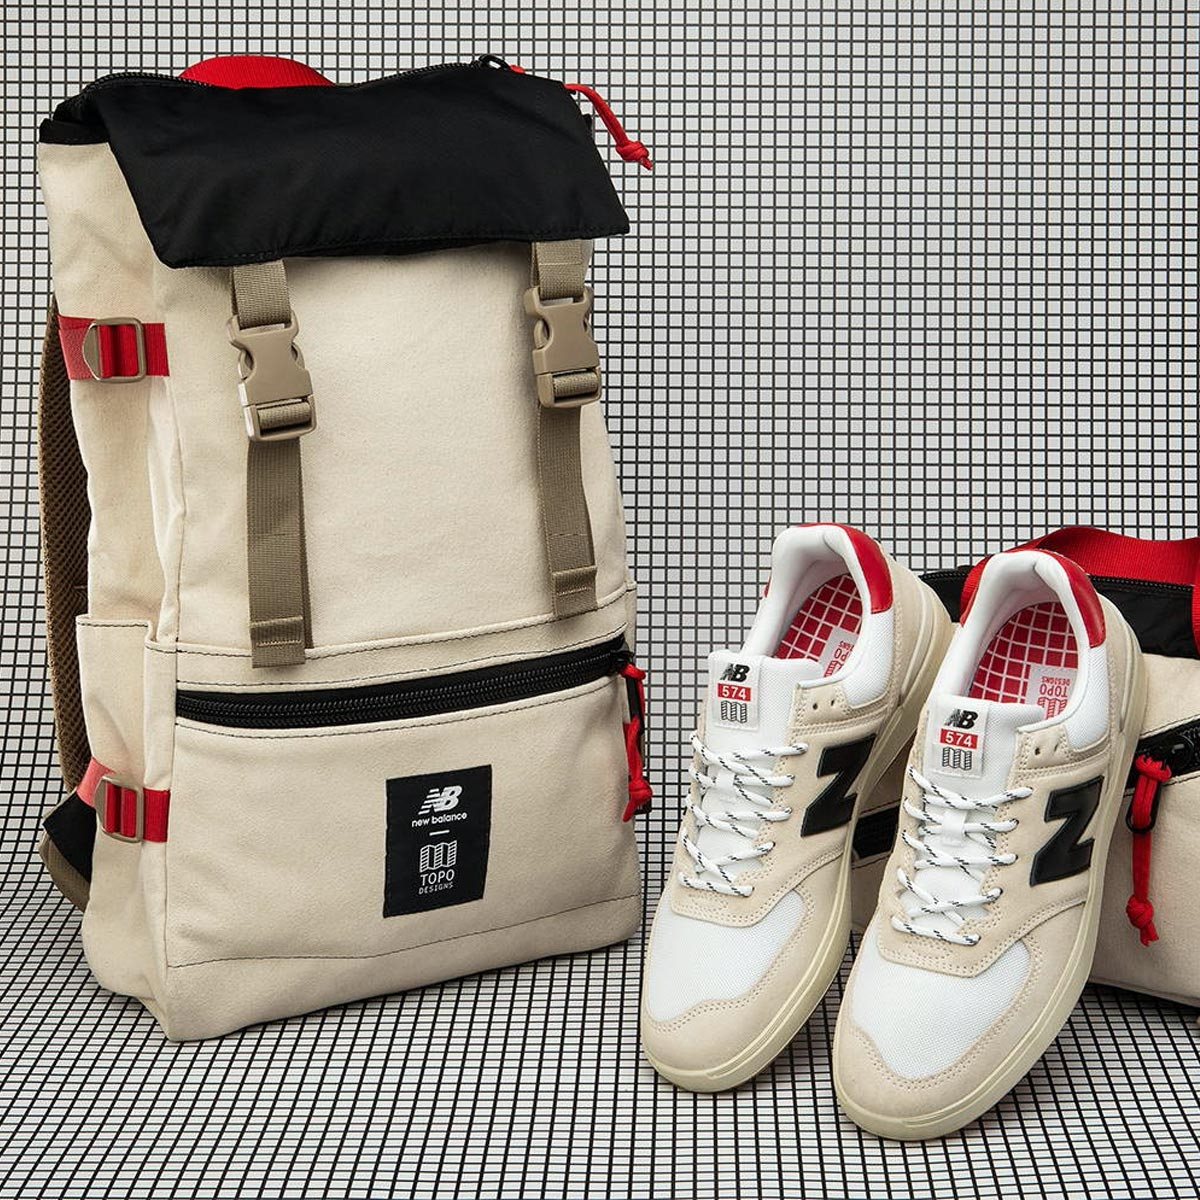 Topo Designs x New Balance Quick Pack, Introducing Topo Designs x New Balance collaboration